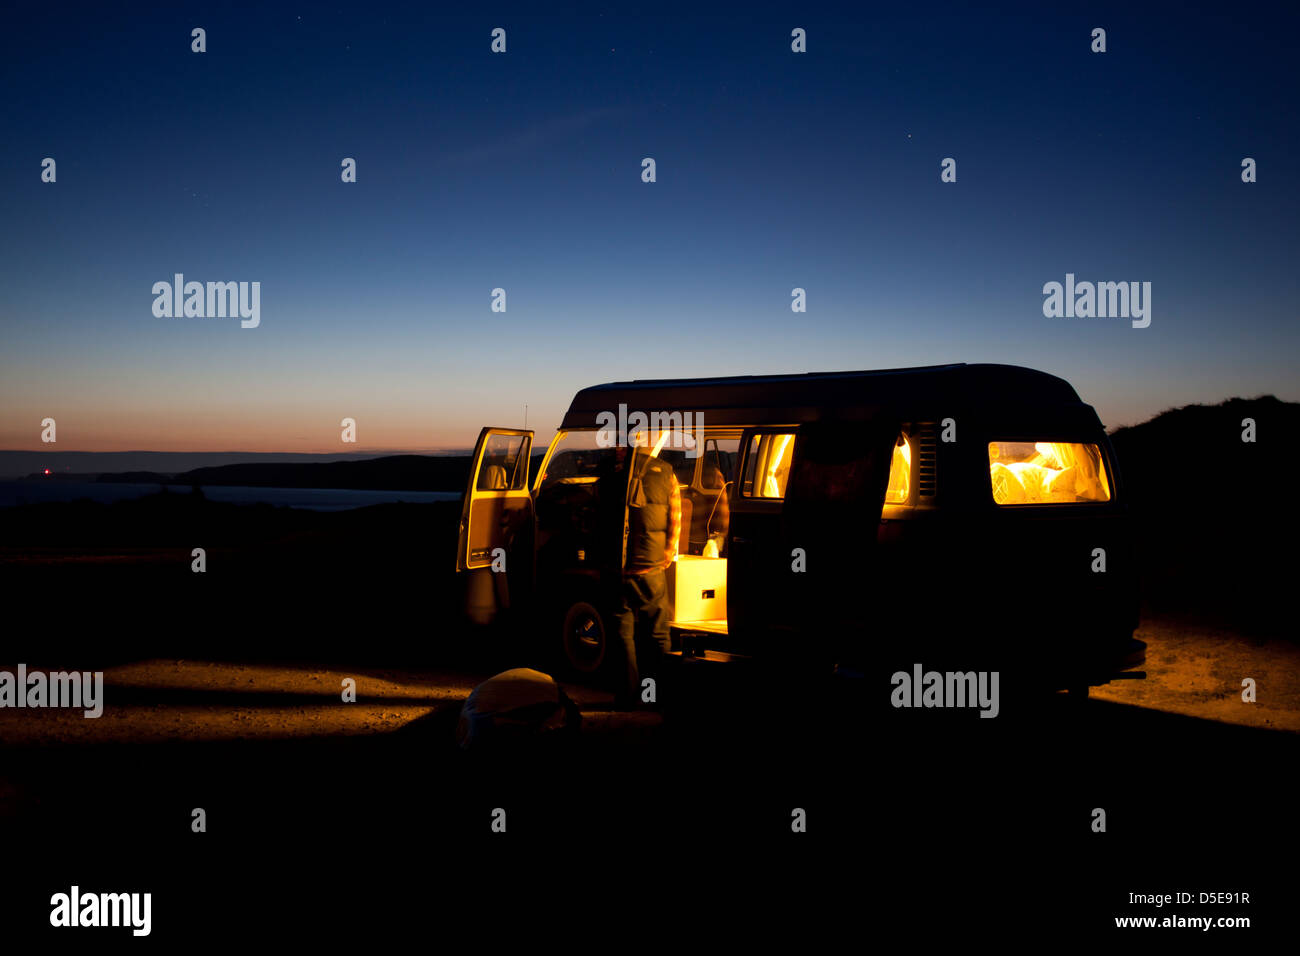 Old VW camper van in Wales at sunset. Stock Photo